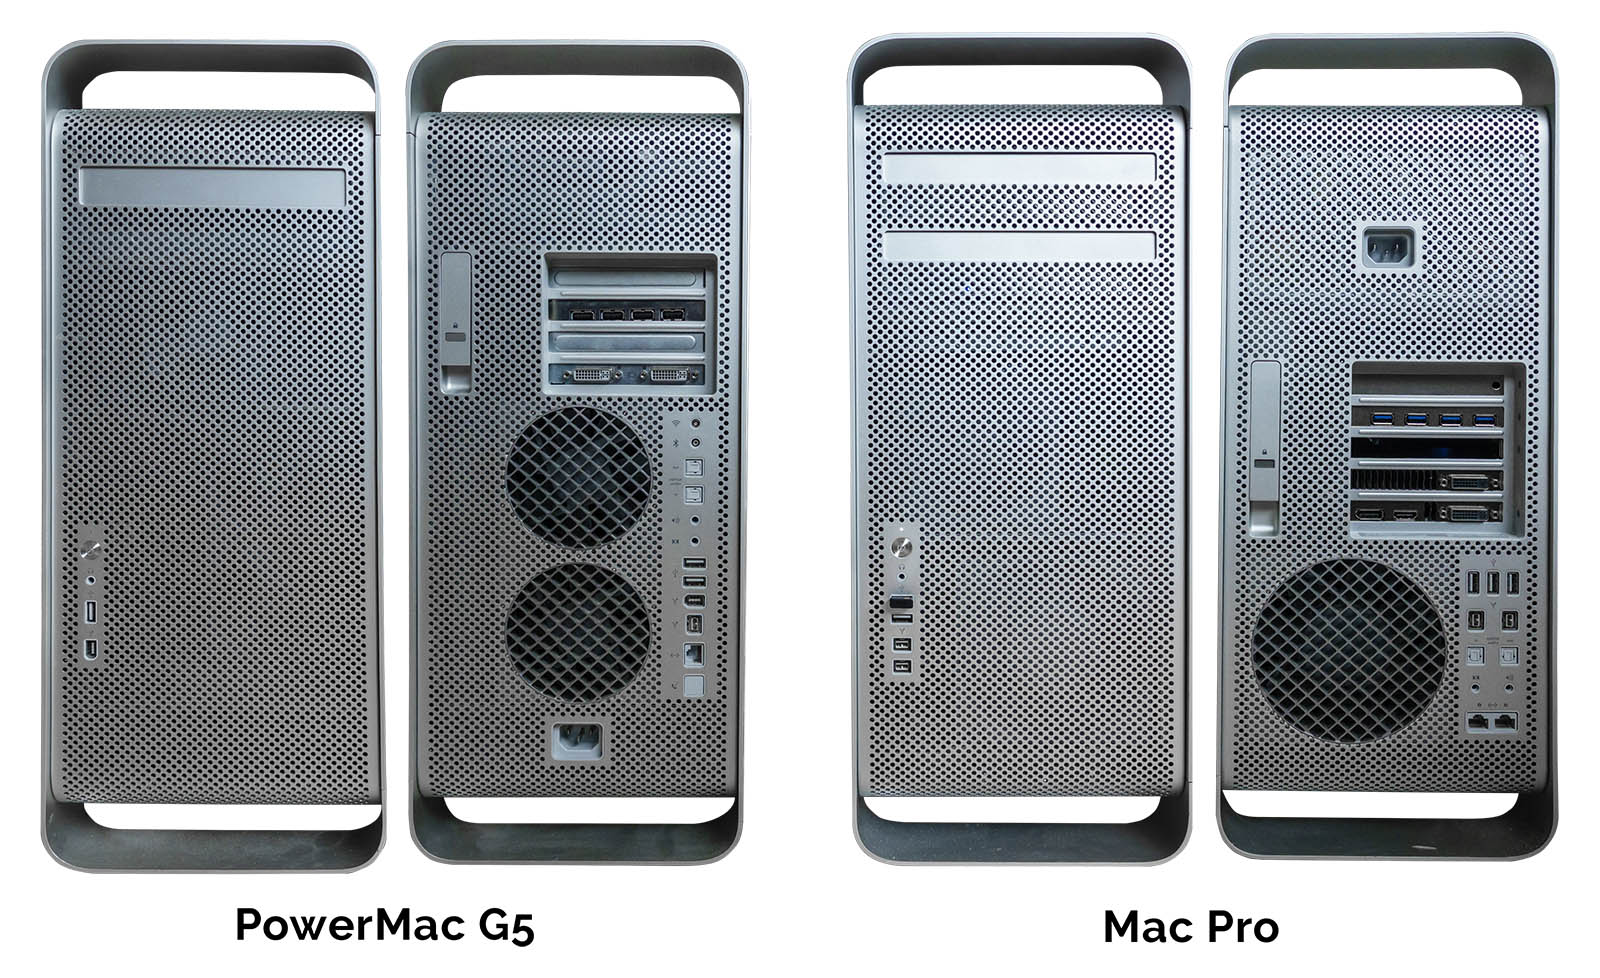 PowerMac G5 vs. Mac Pro